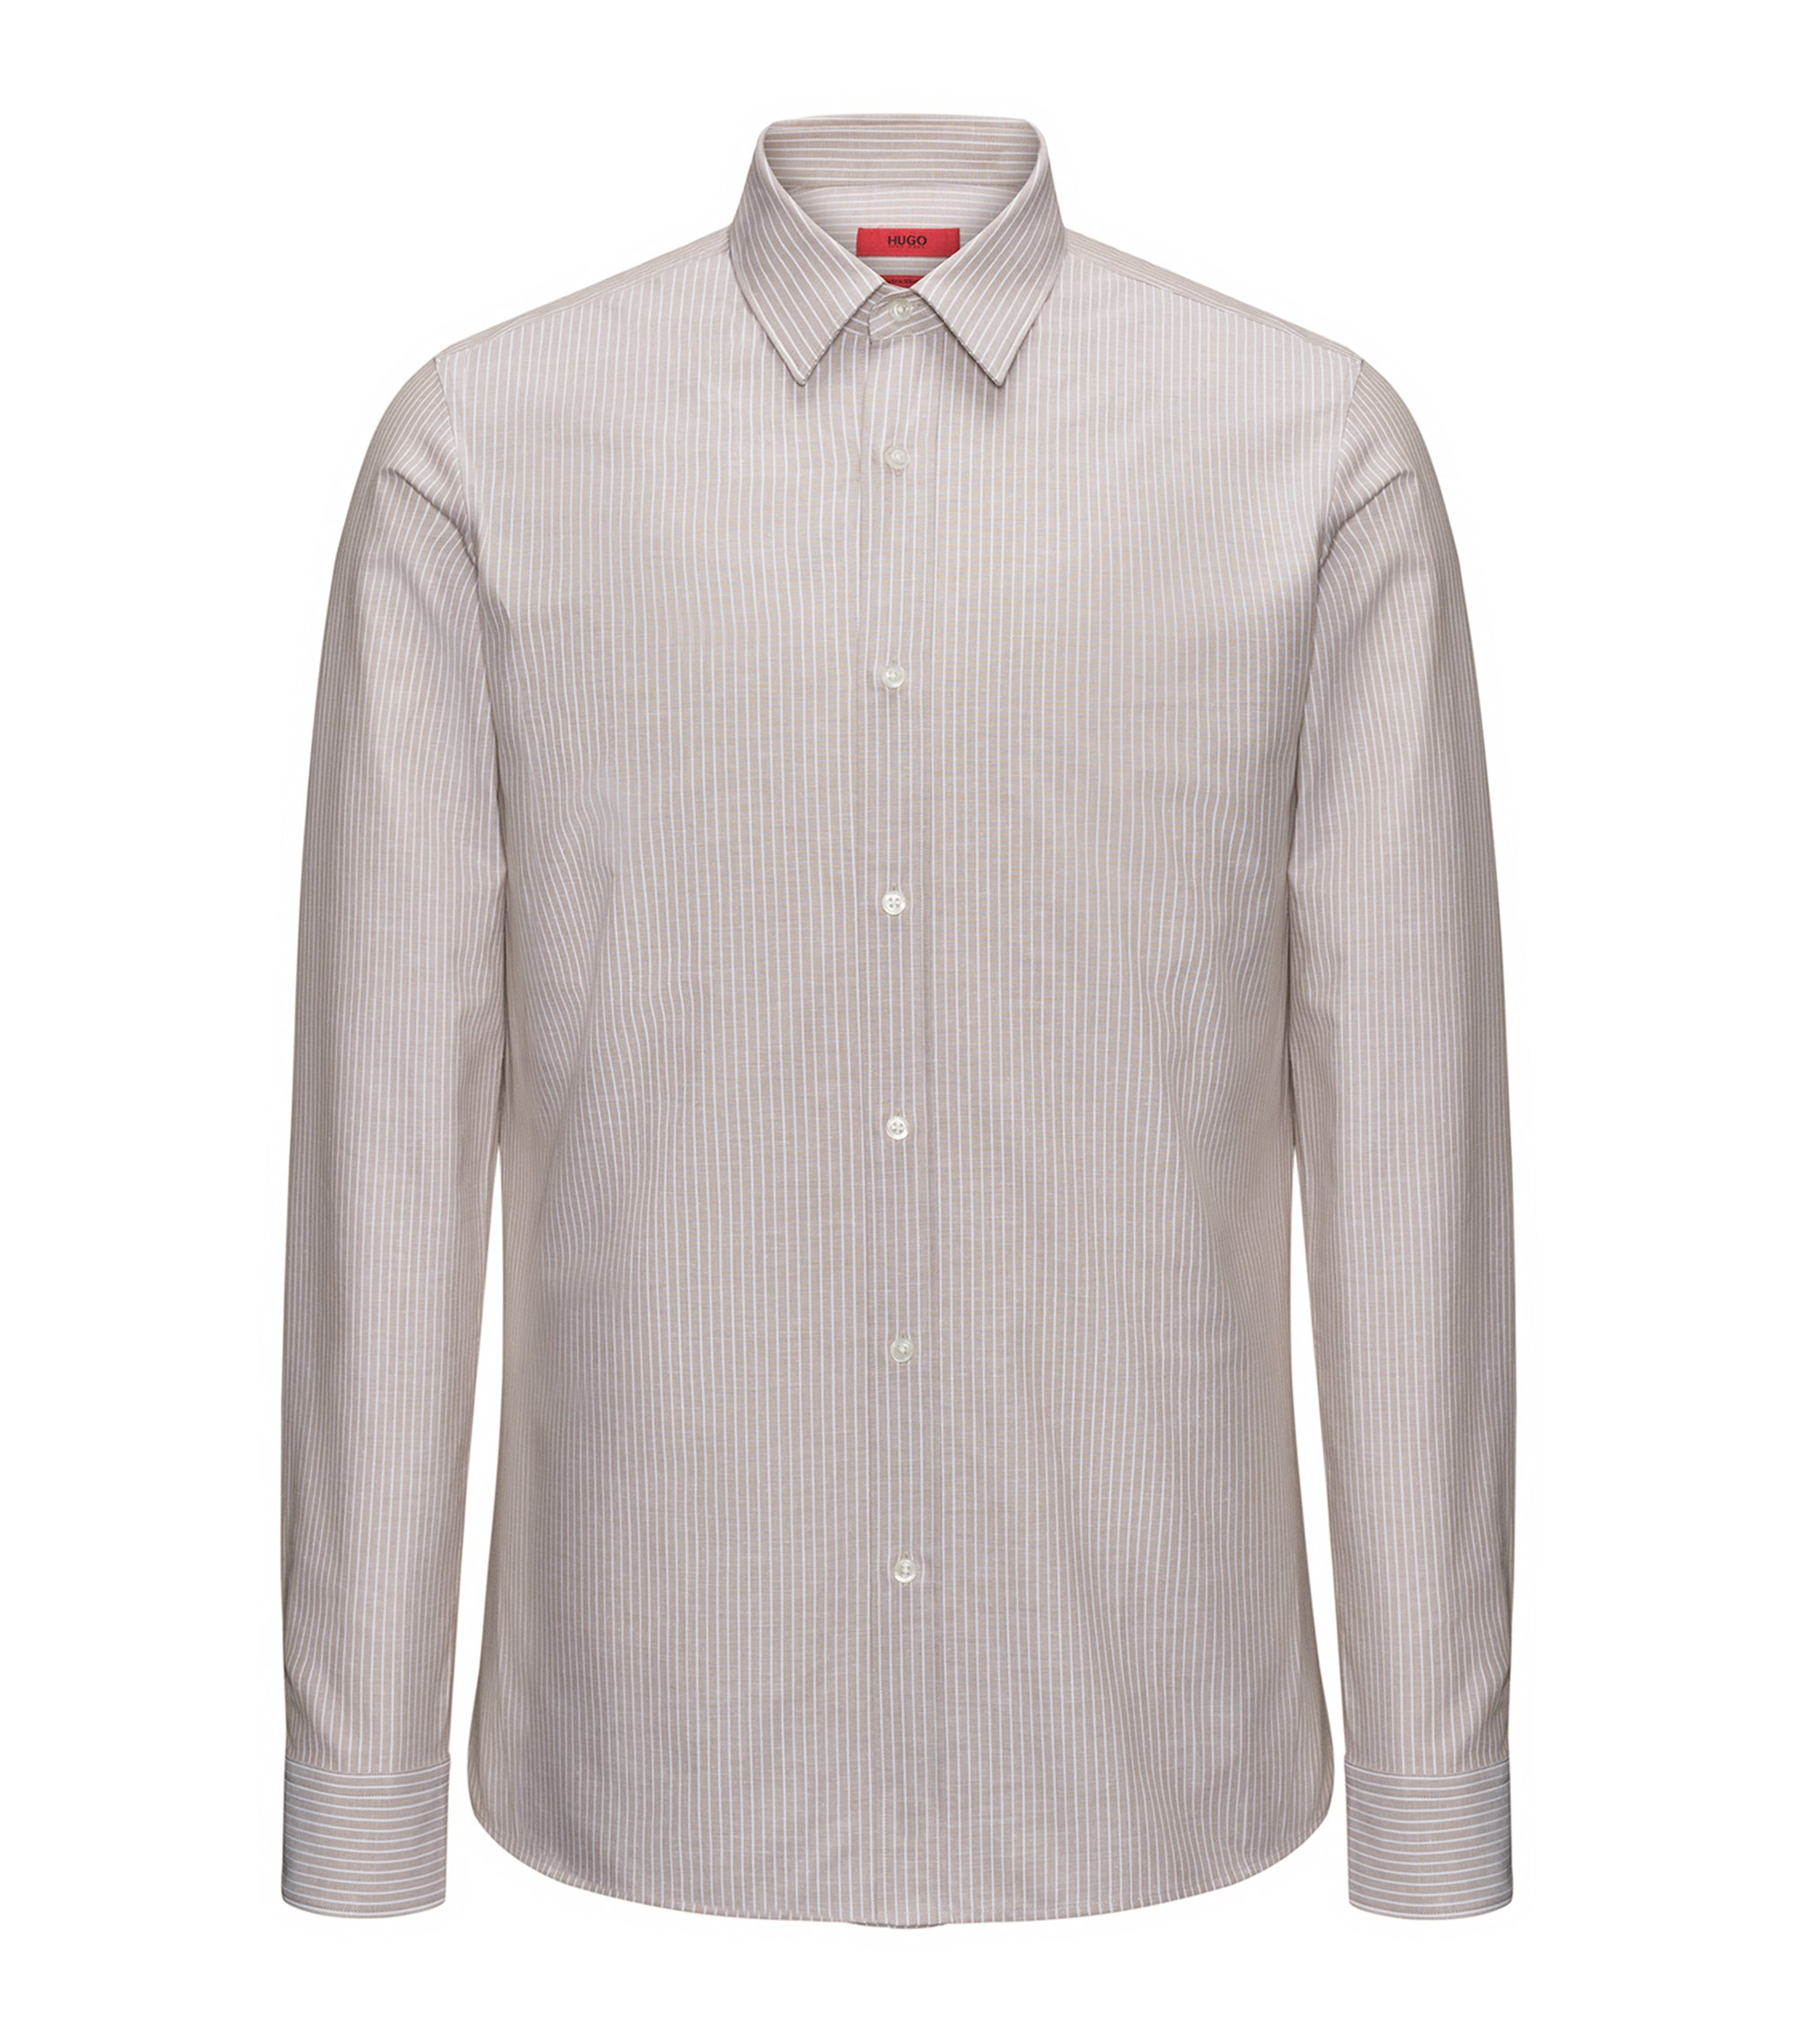 Striped cotton-blend shirt in an extra-slim fit, Light Beige